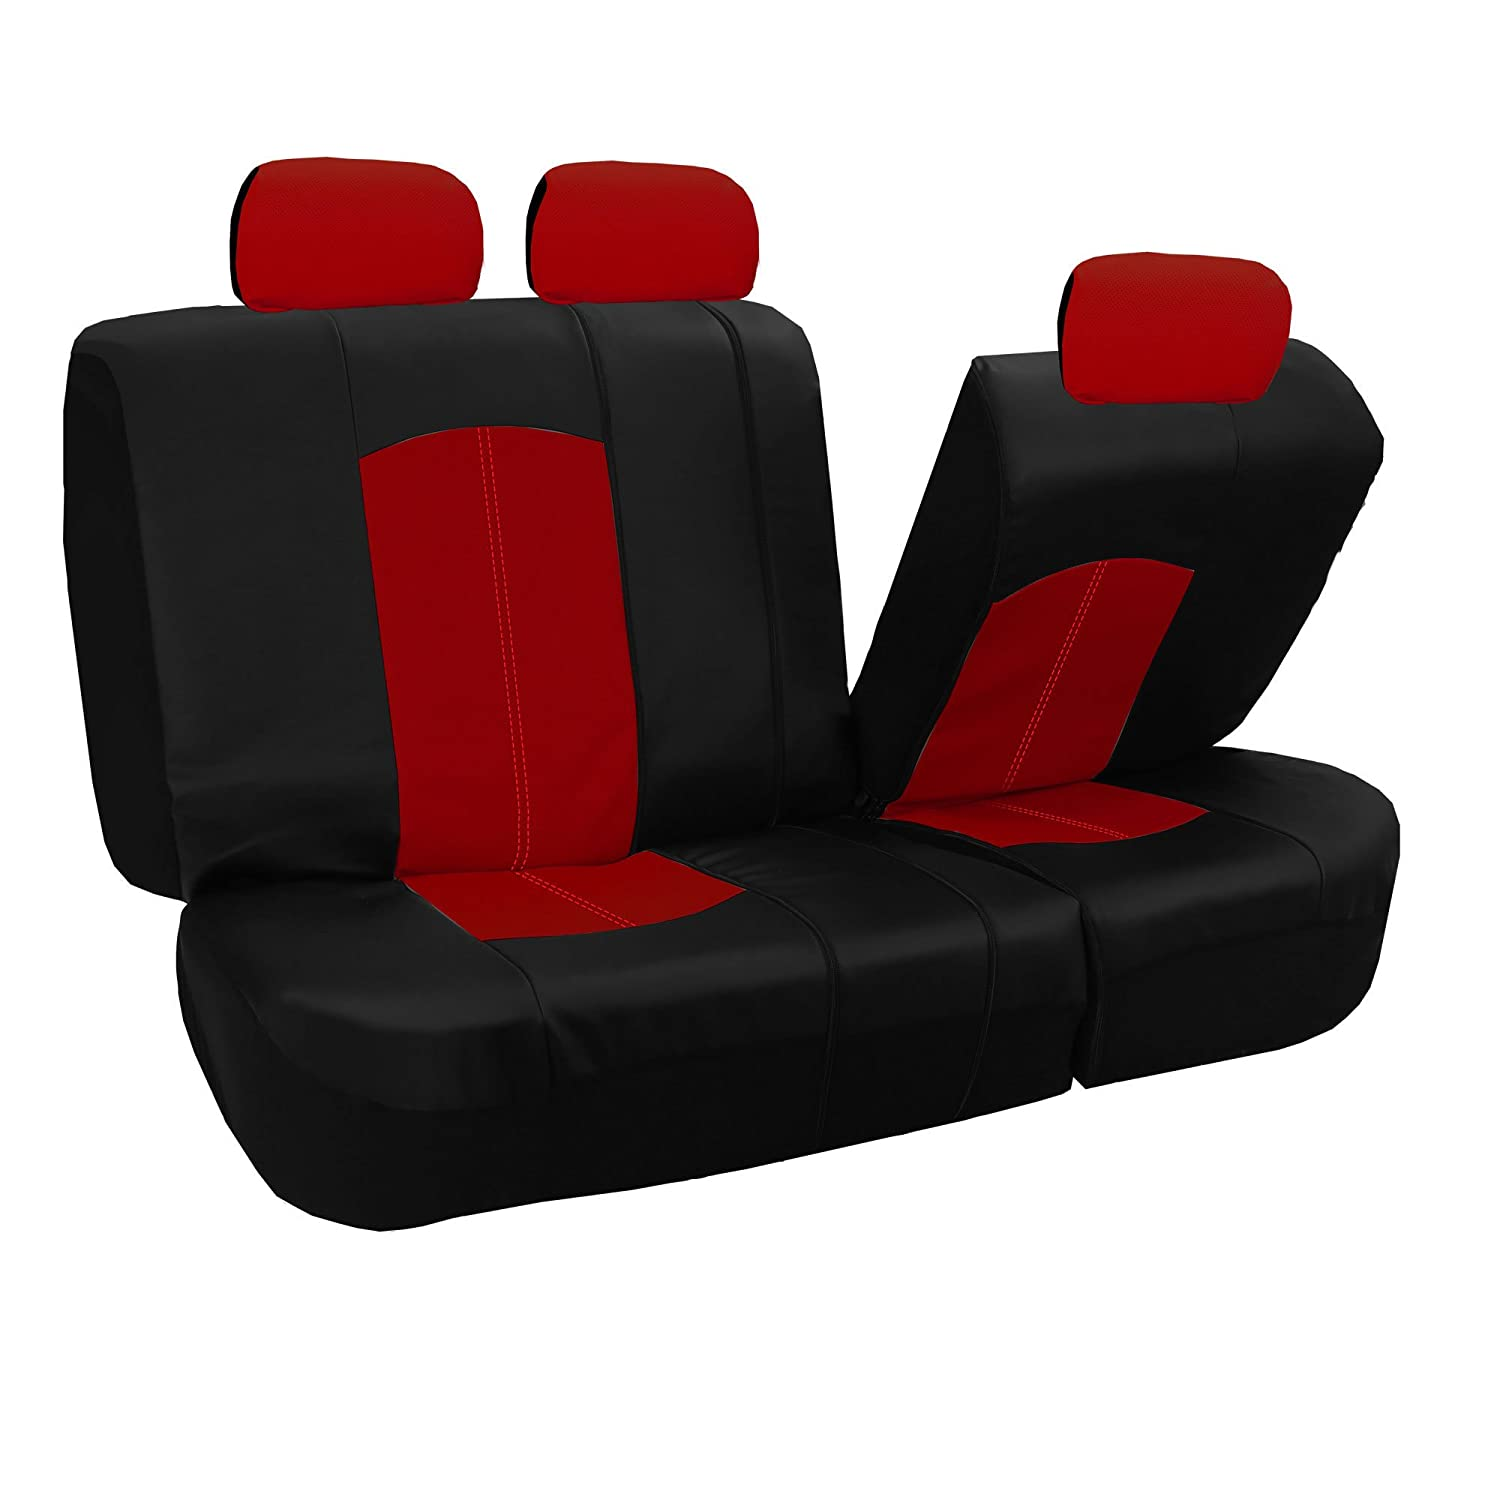 Perforated Leatherette Airbag Compatible and Split Bench Ready Gray FH Group PU008GRAY115 Full Set Seat Cover